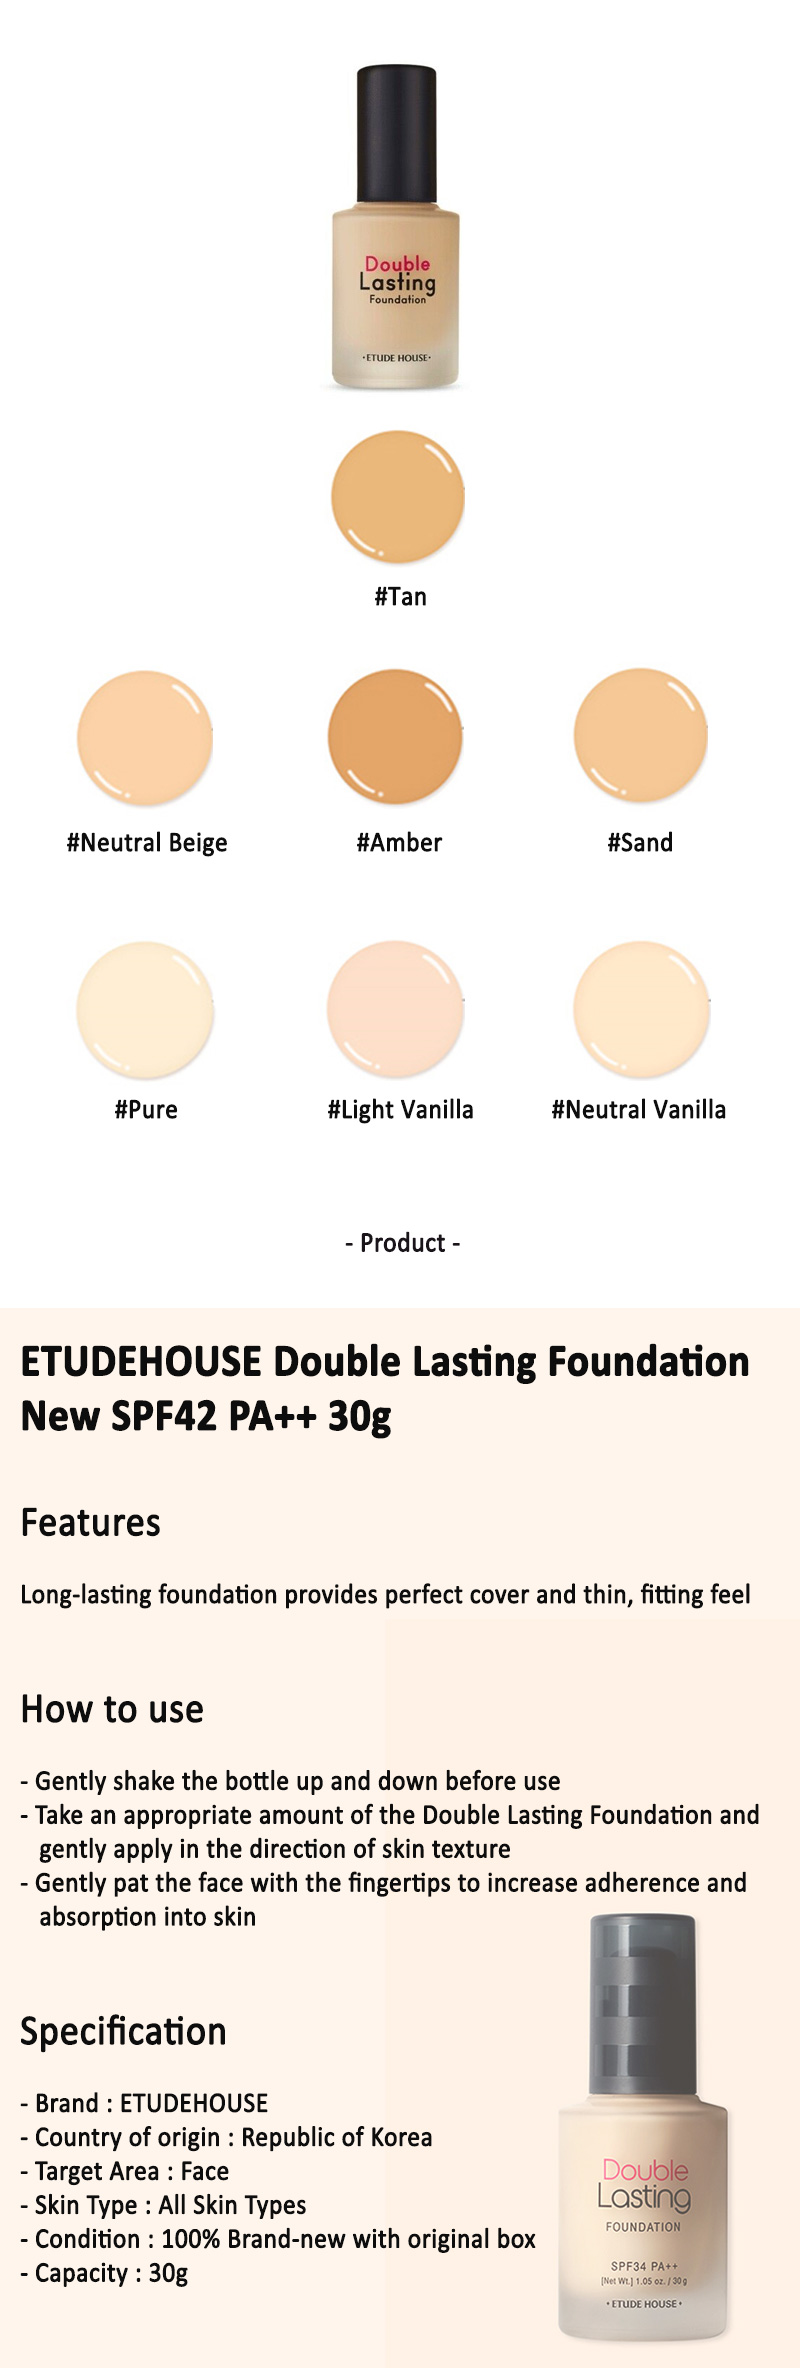 Etude House Double Lasting Foundation New Spf42 Pa 30g New Neutral Vanilla